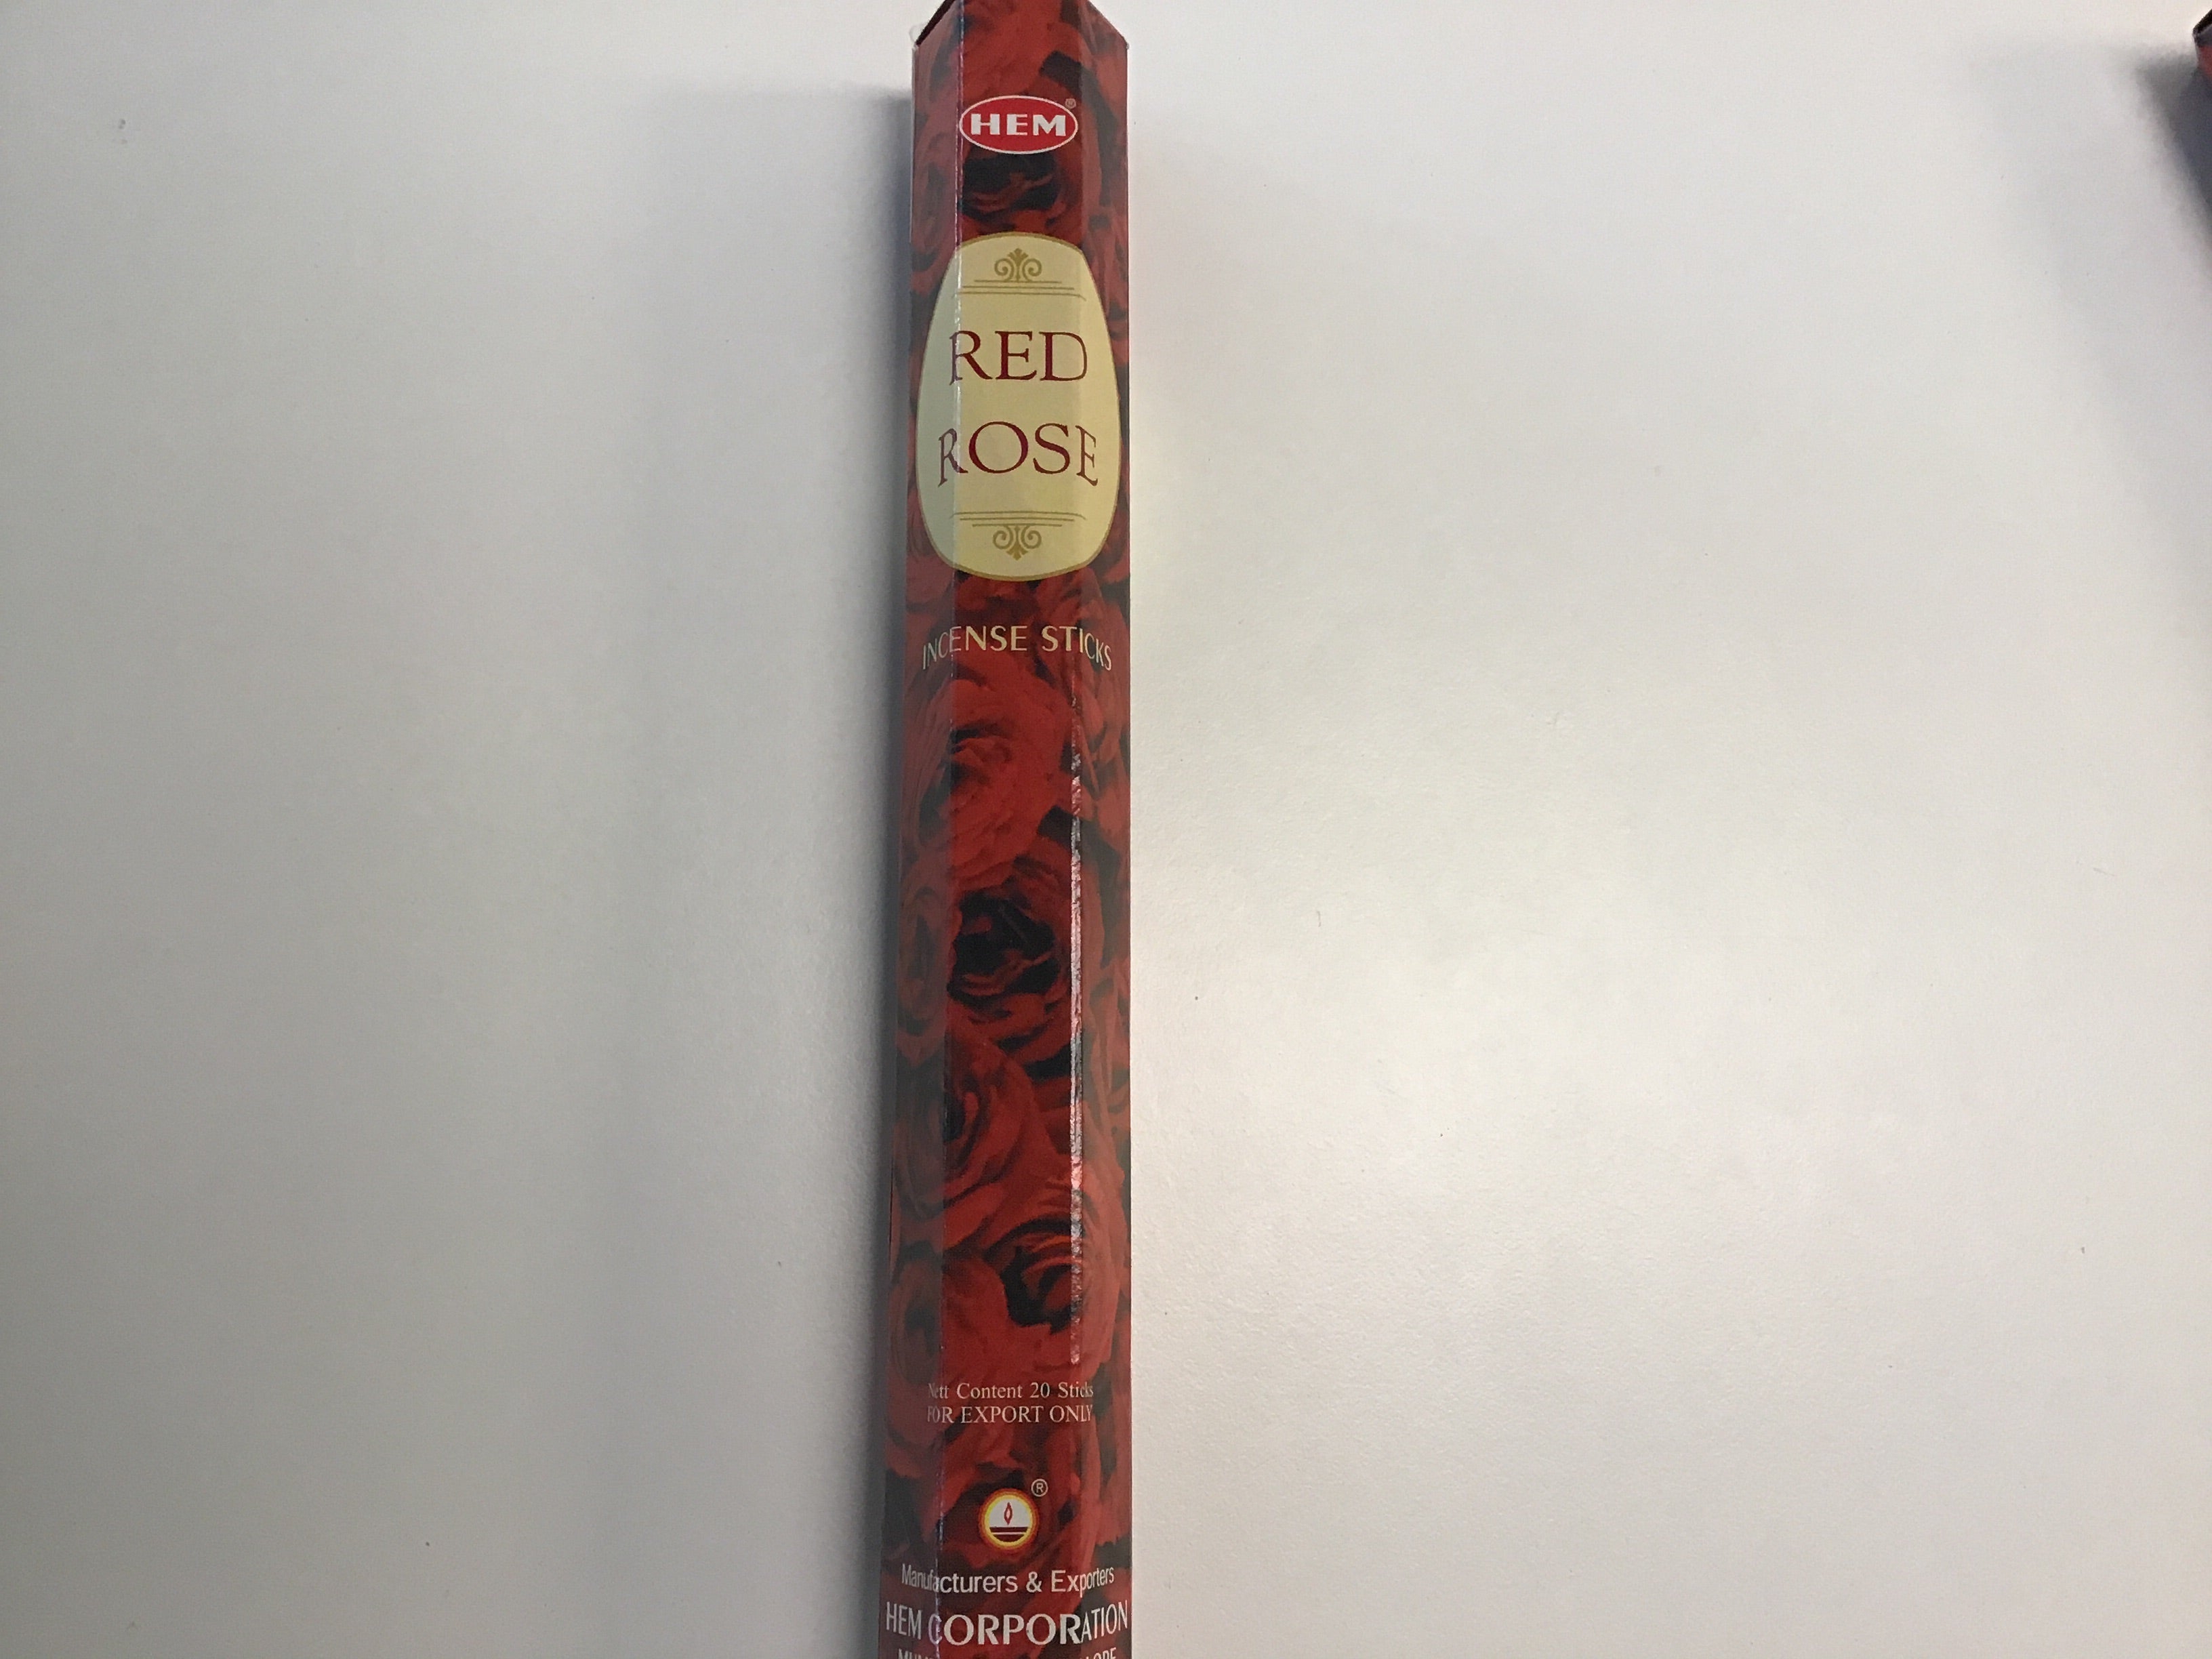 Hem Red Rose Incense Sticks